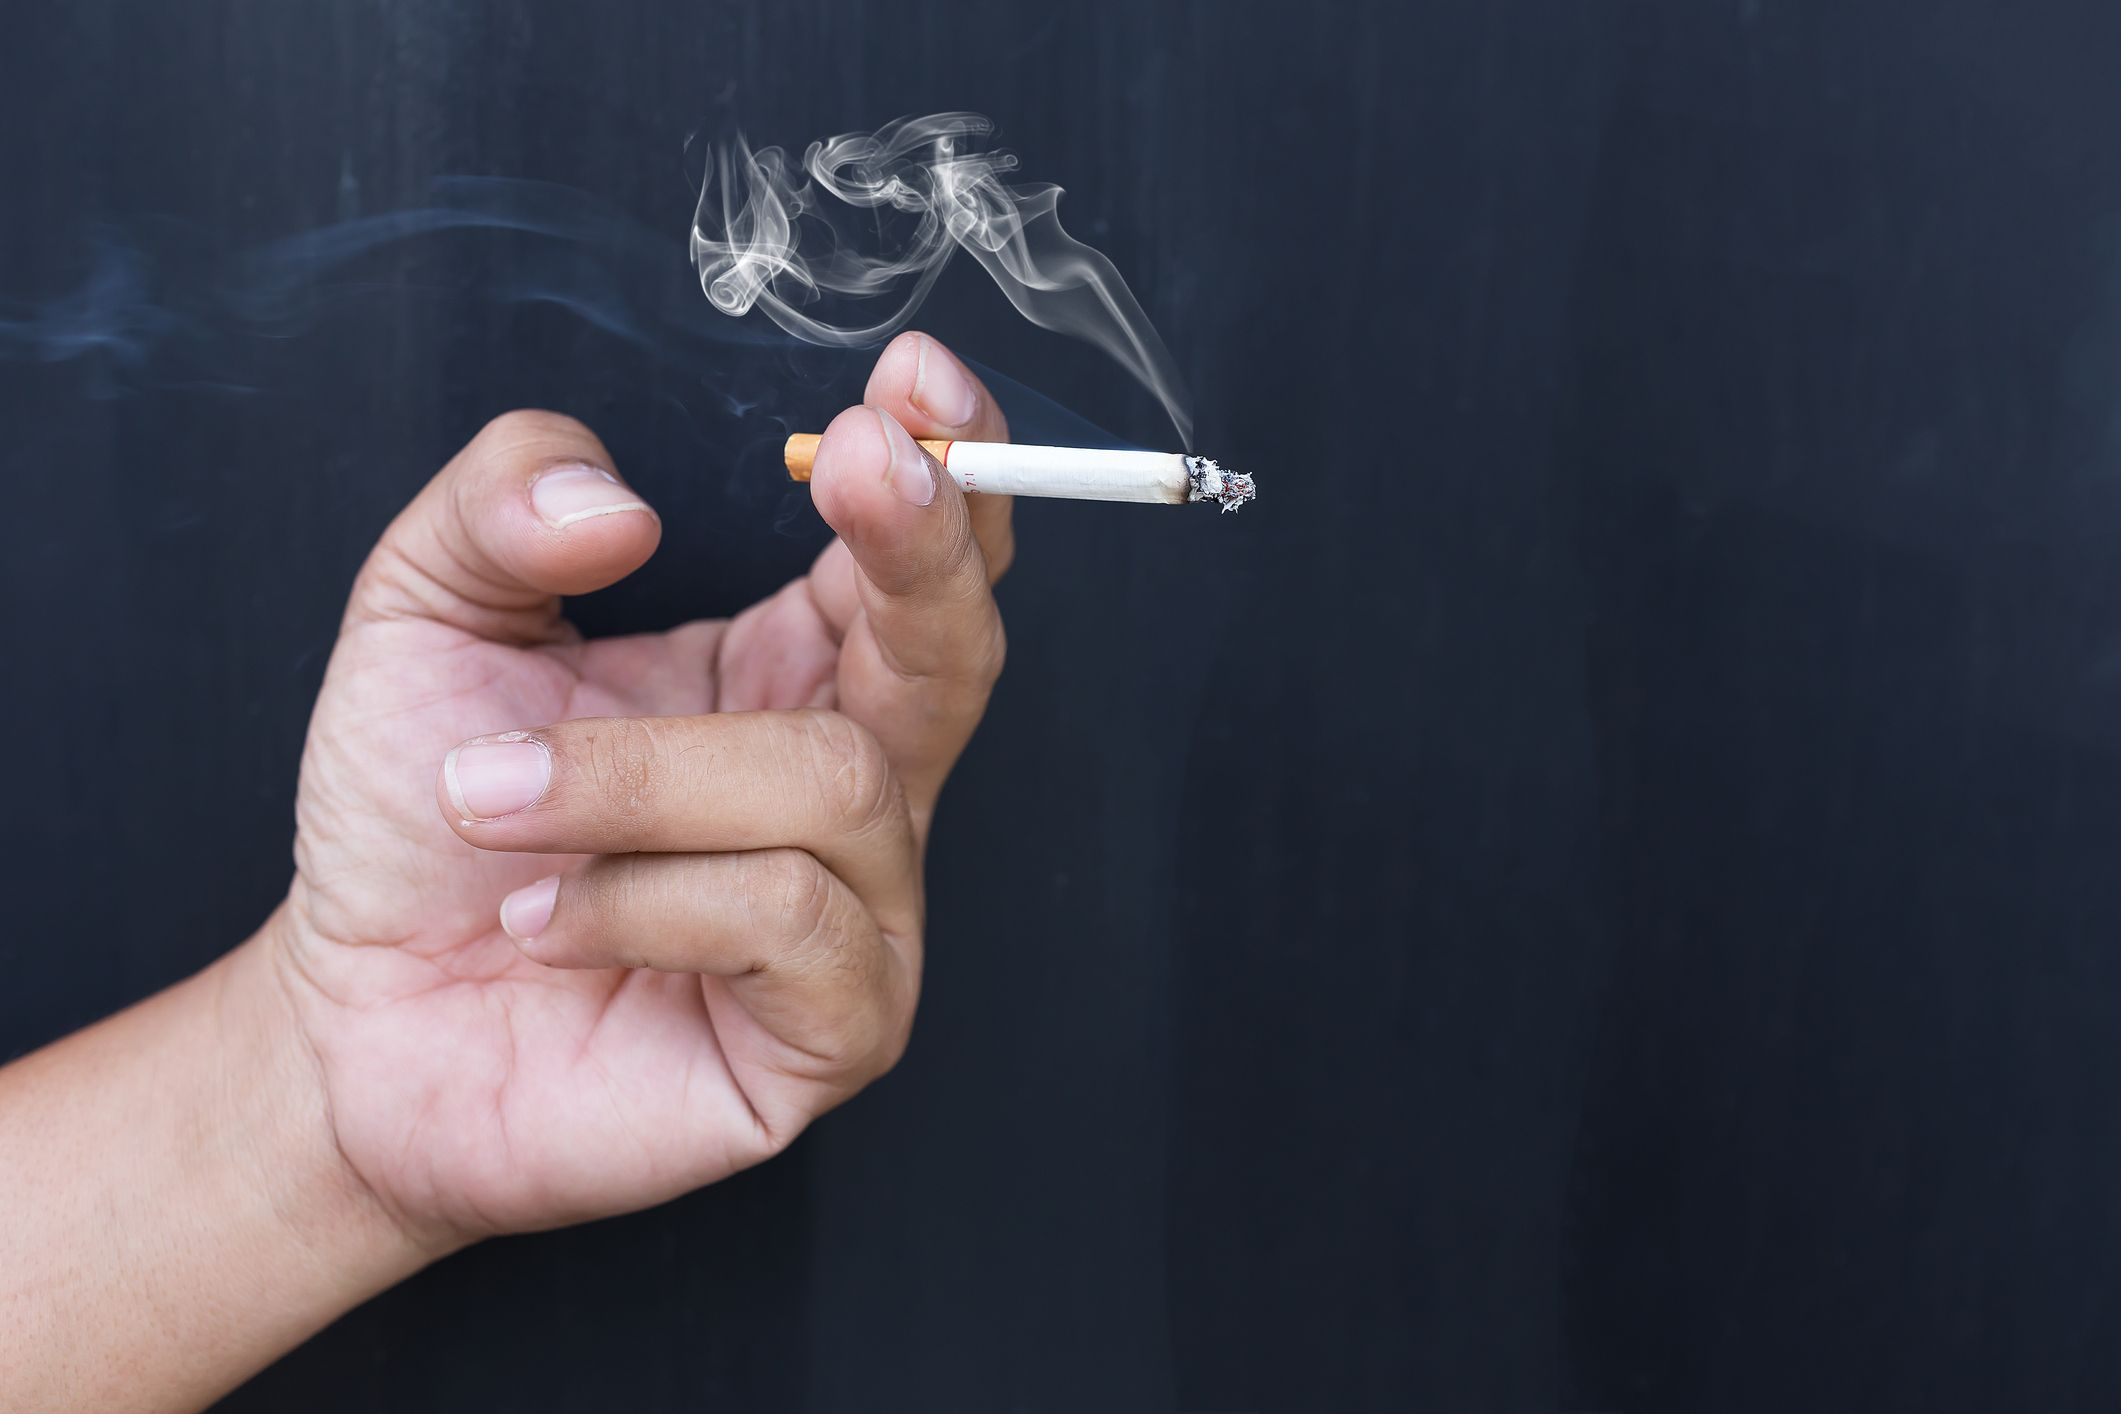 Remarkable, cigarettes linked to no sperm agree